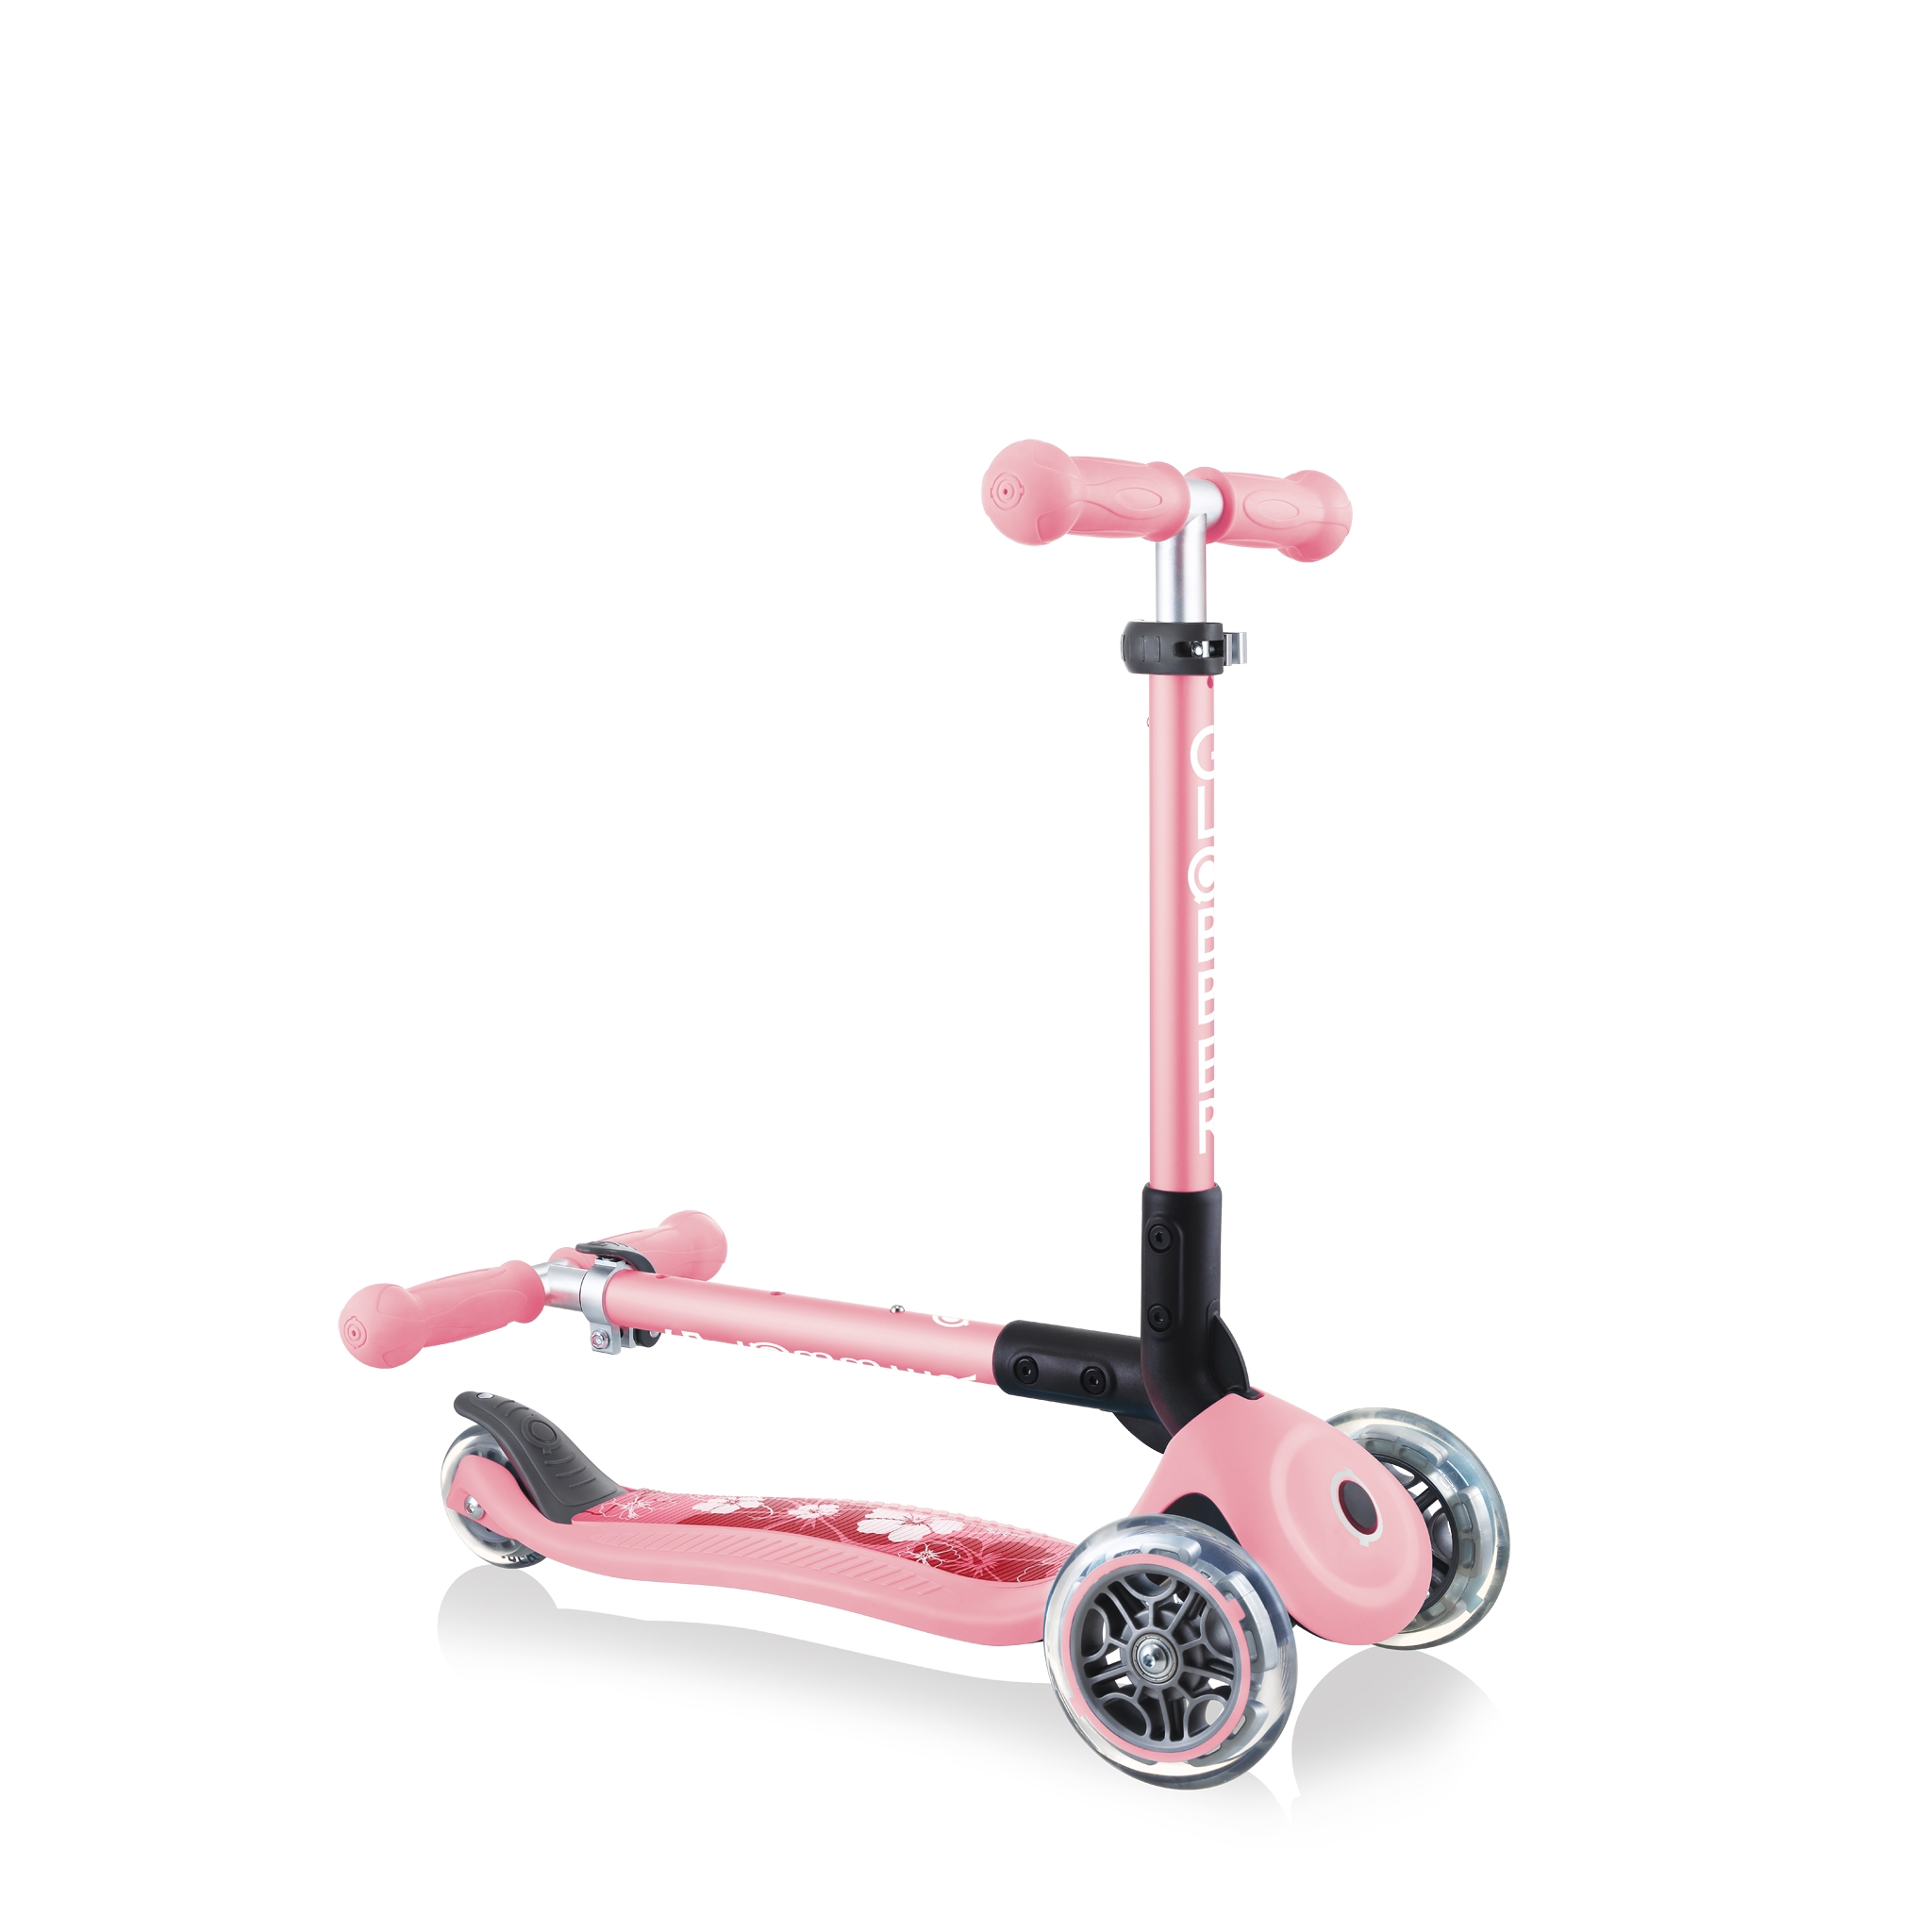 Foldable-3-wheel-scooter-for-toddlers-Globber-JUNIOR-FOLDABLE-FANTASY 3